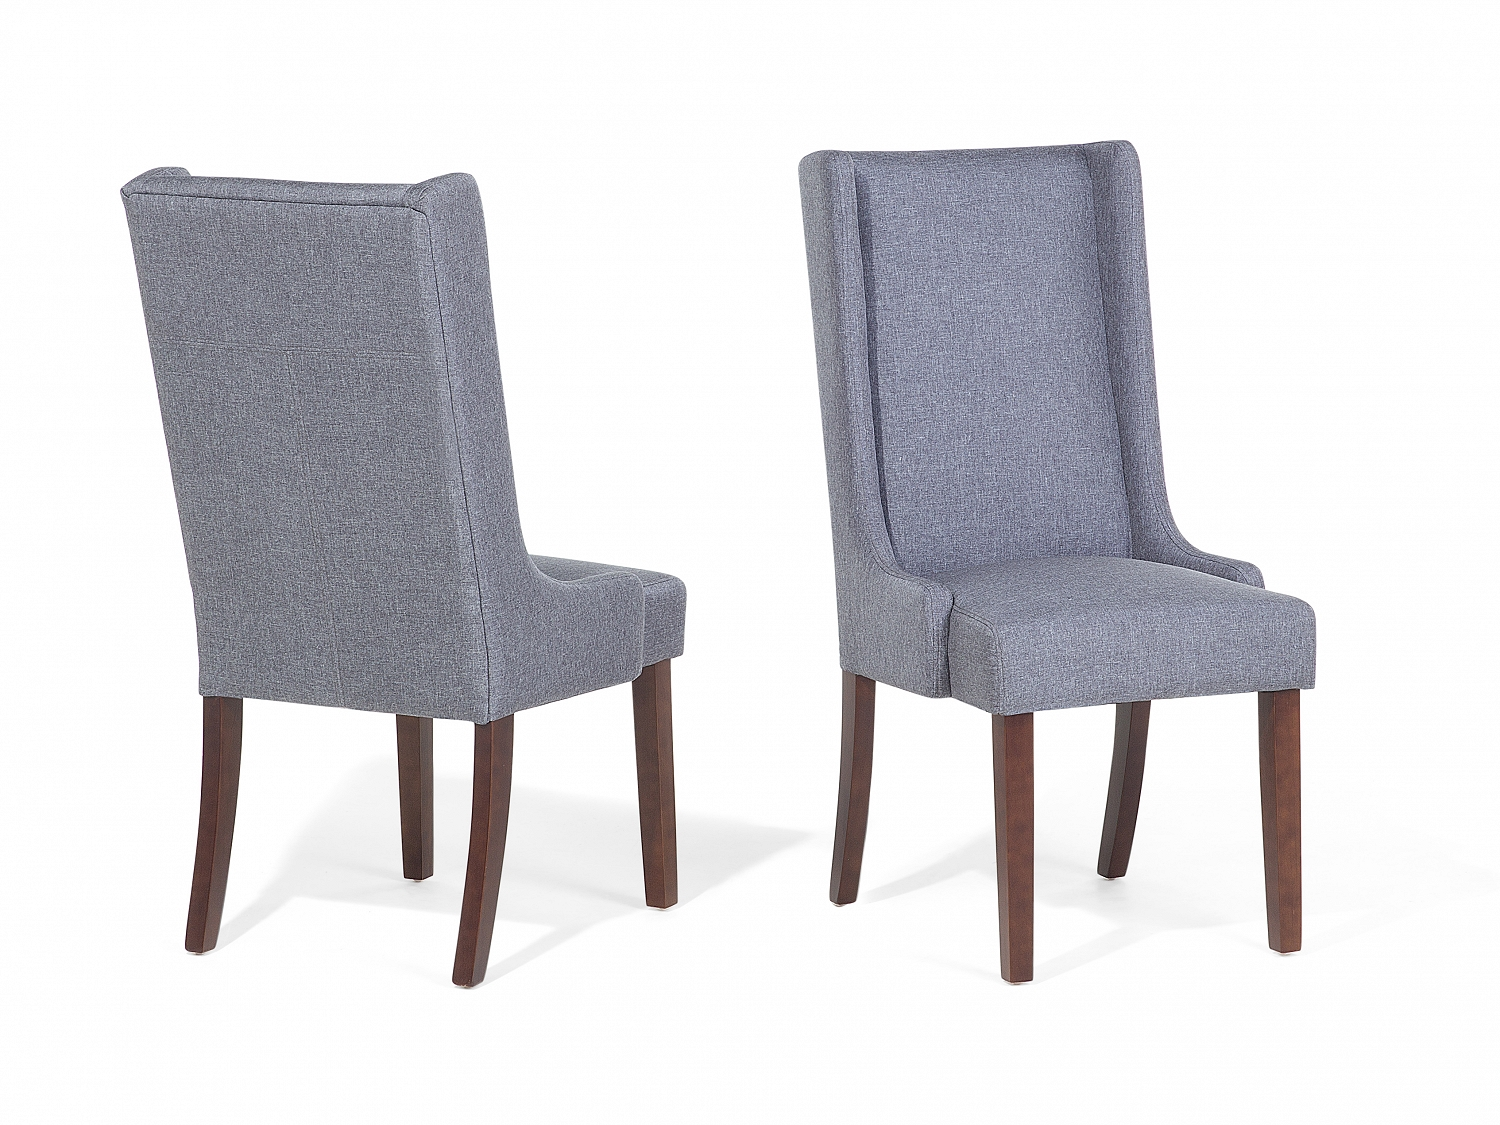 Chair Dining Chair Upholstered Armless High Back Dark Grey ...